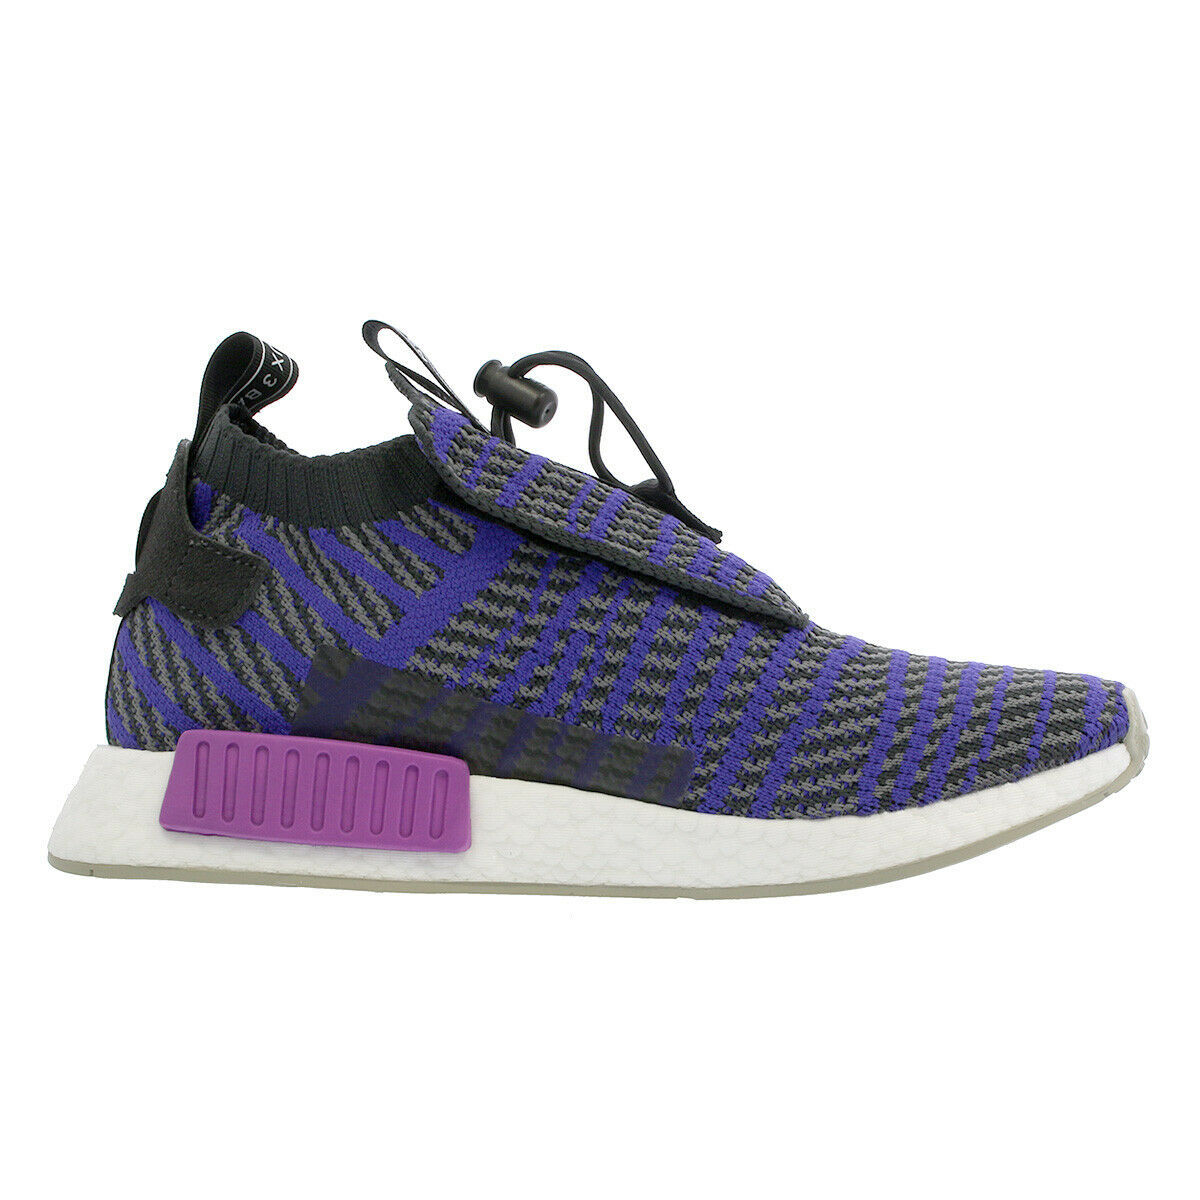 Adidas Originals NMD TS1 PK Primeknit Carbon Blue Boost BB9177 Mens Size 9.5